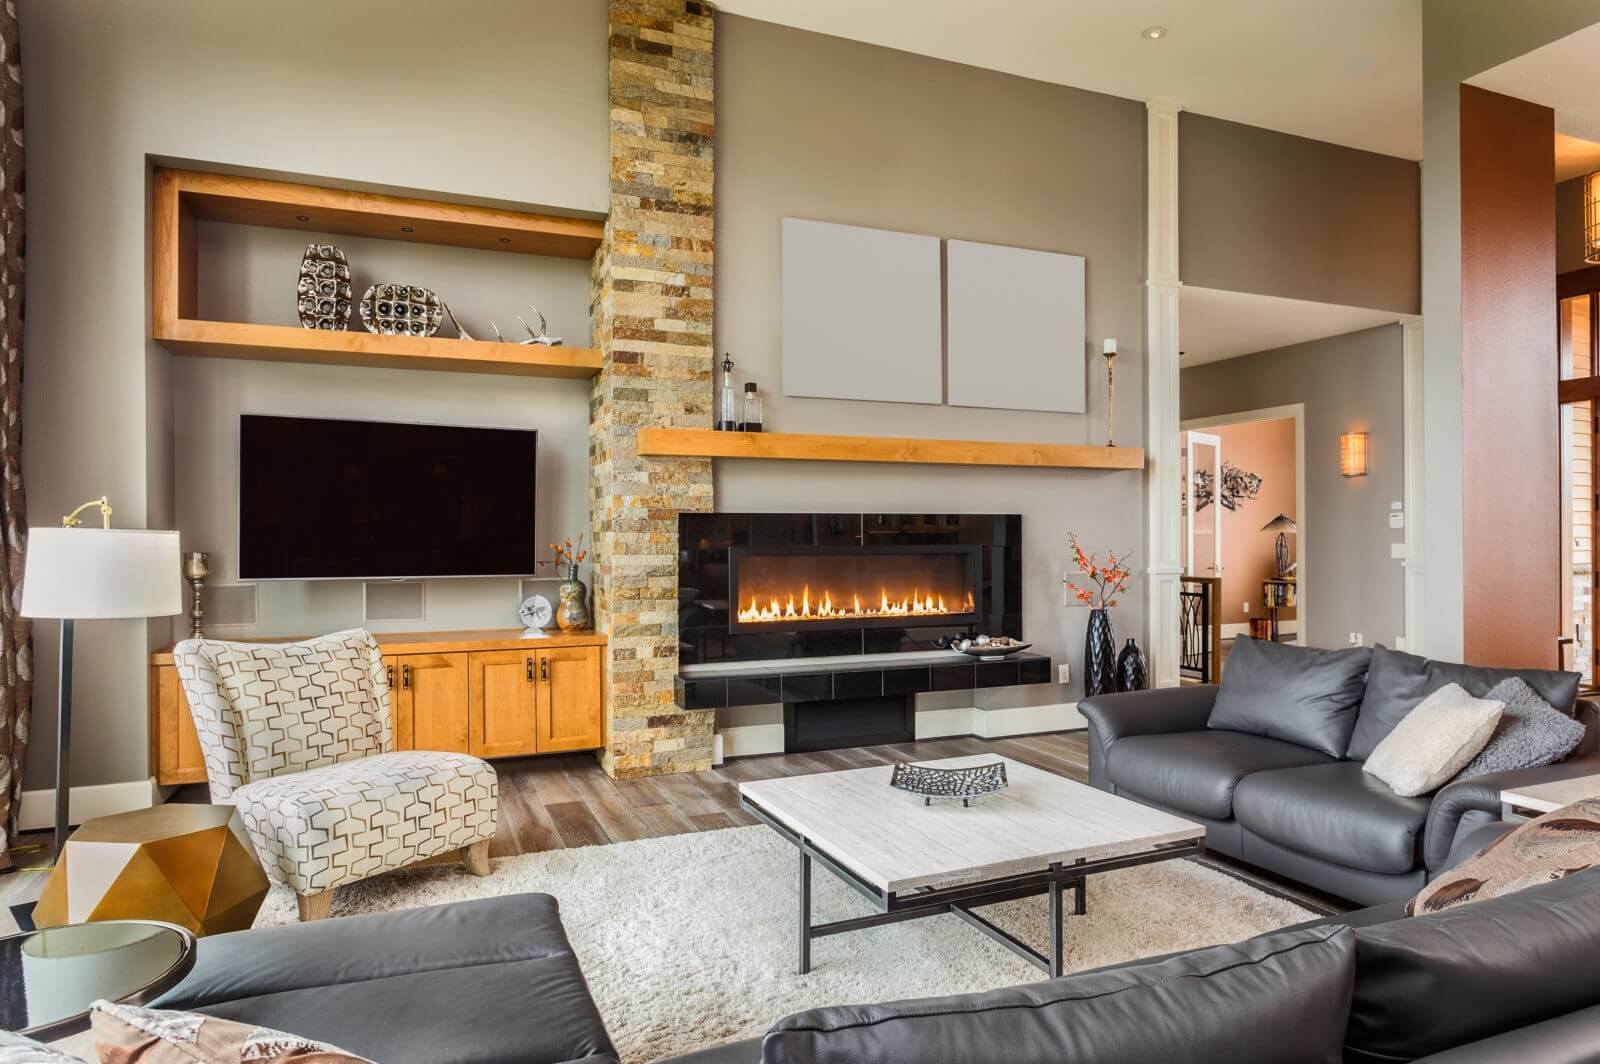 8-best-homestaging-tips-to-sell-your-home-in-2019